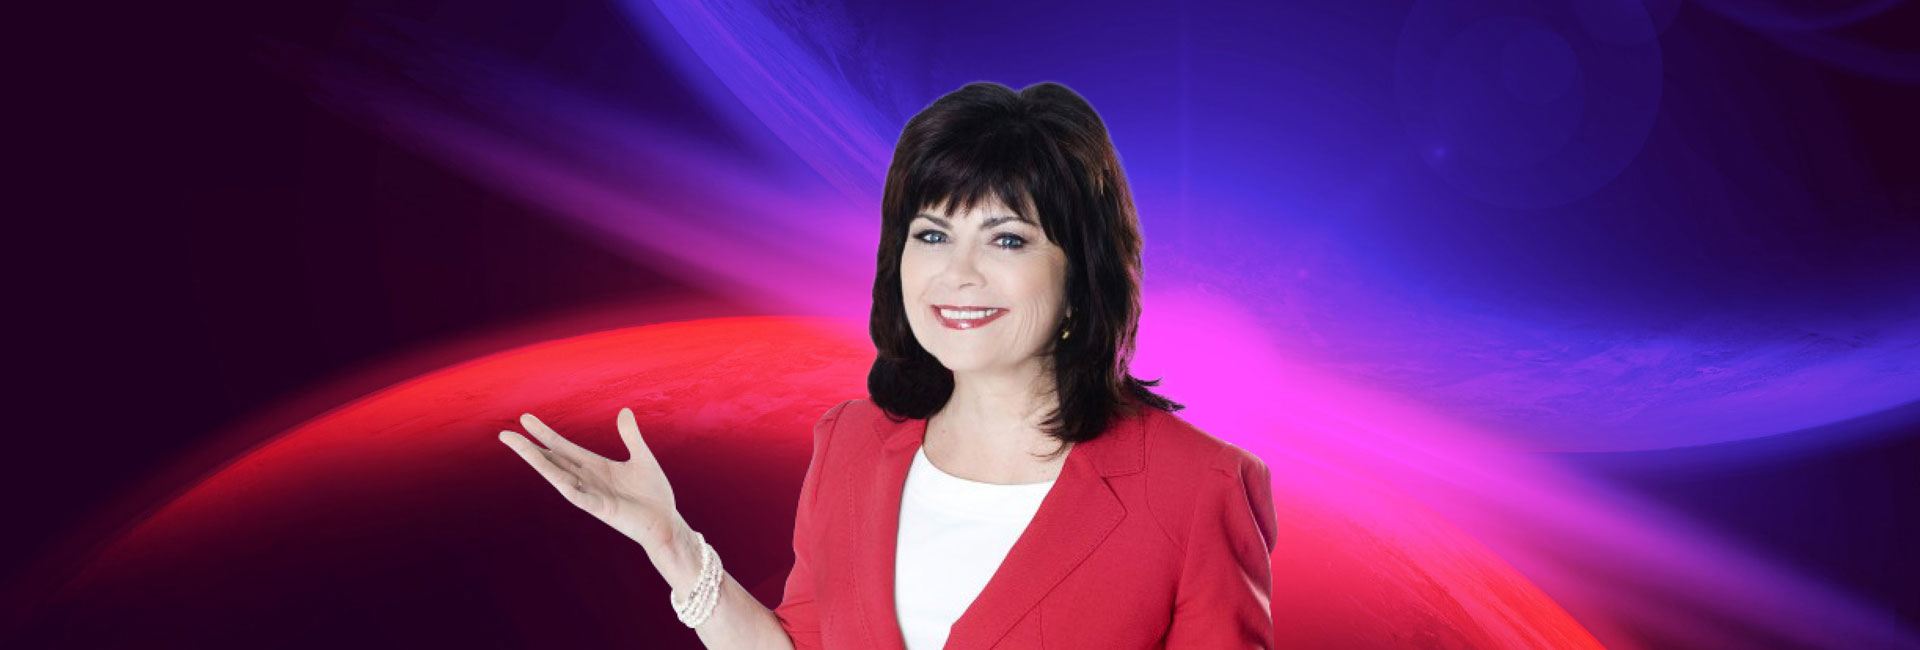 Learn How To Be A COMPELLING SPEAKER To Supercharge Sales! Arvee Robinson